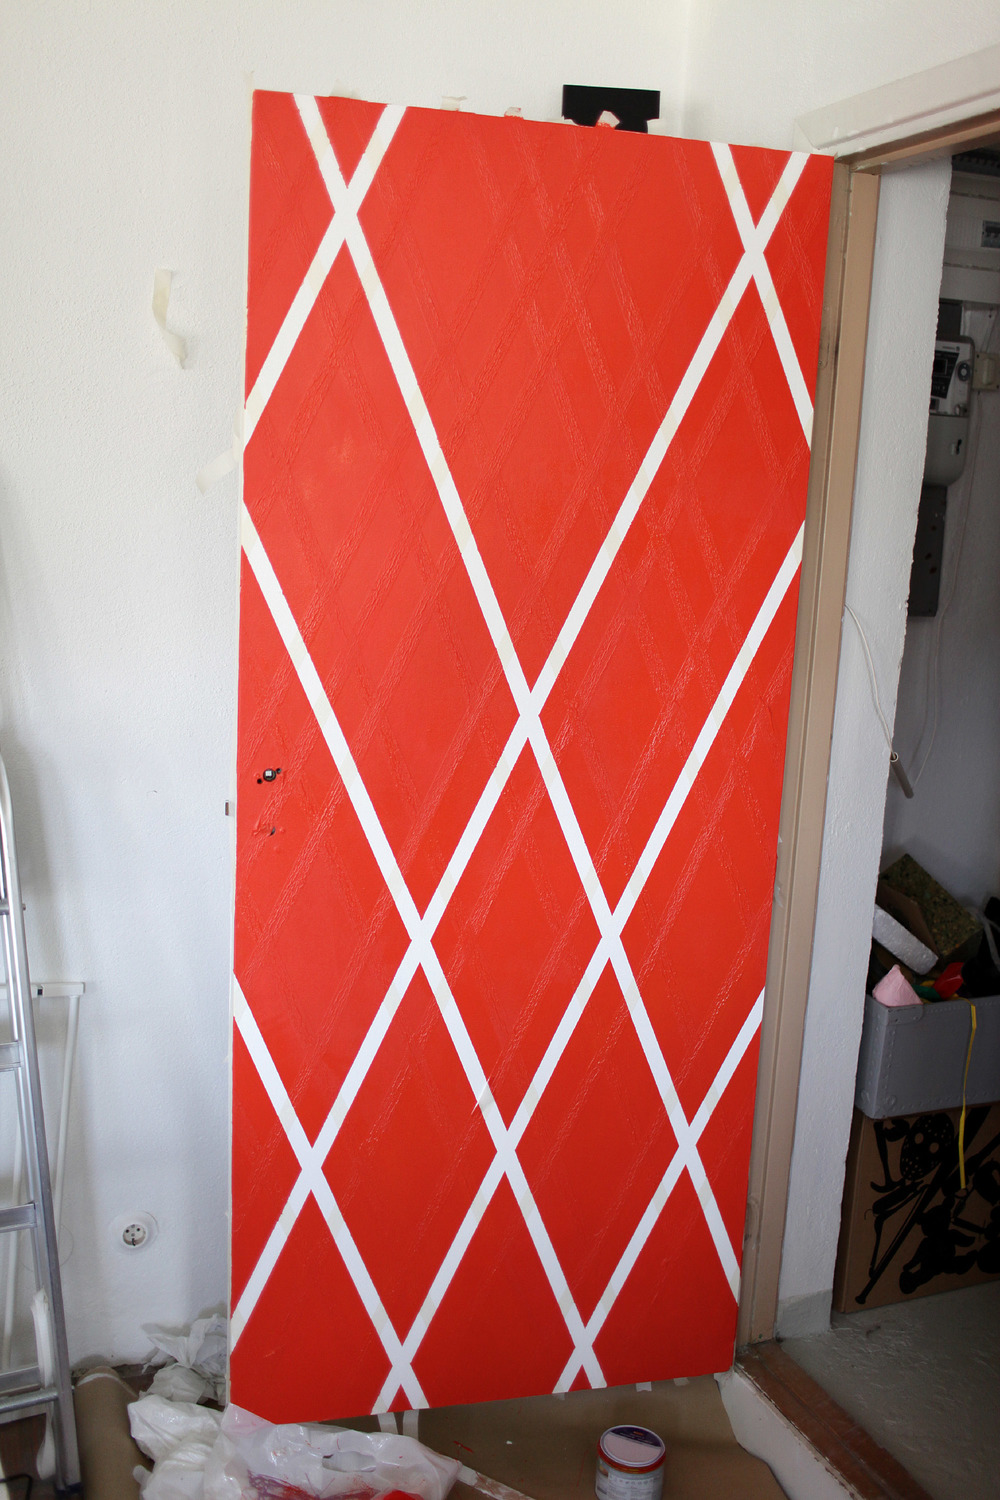 Anotherblogg_Anna_Lidström_DIY_Polka_Painted_Door5.JPG